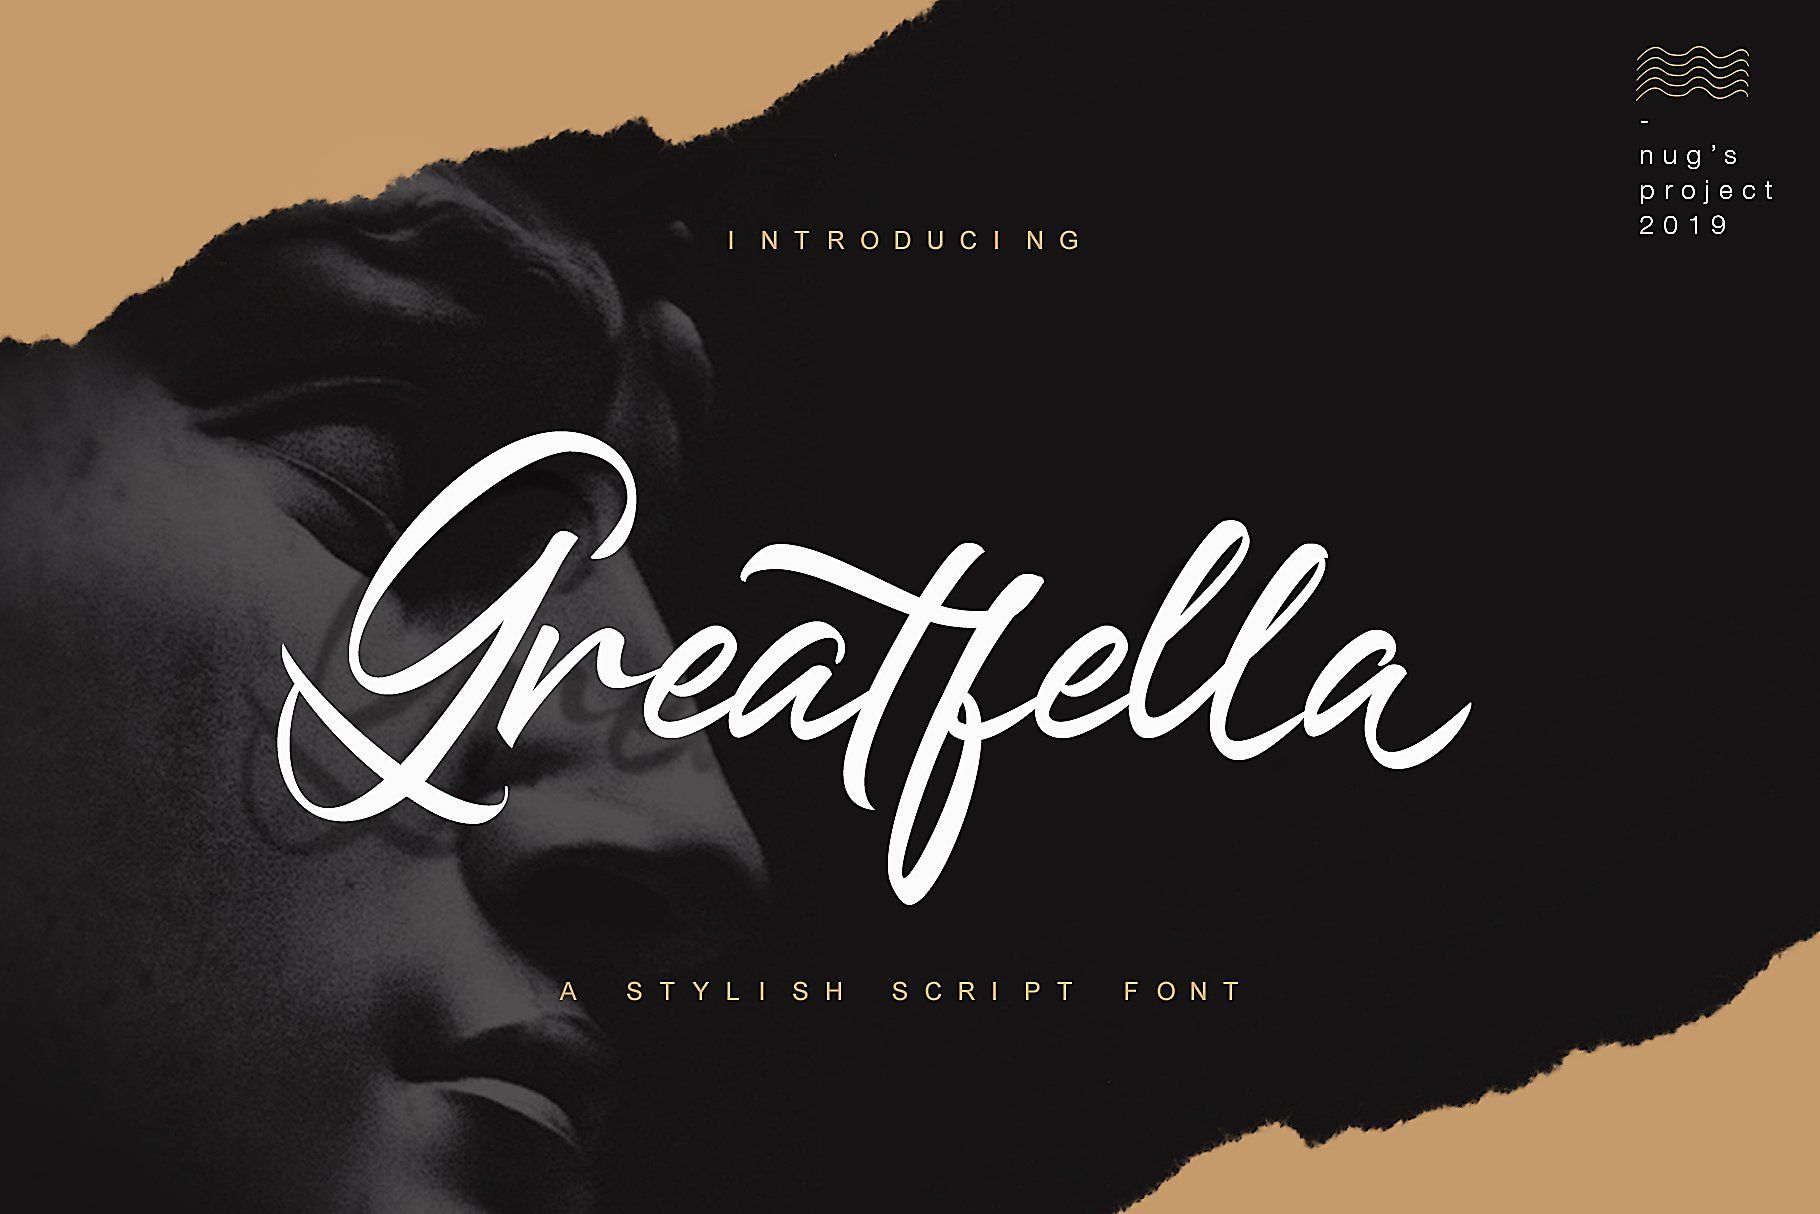 Greatfella in 2020 Brush script fonts, Script